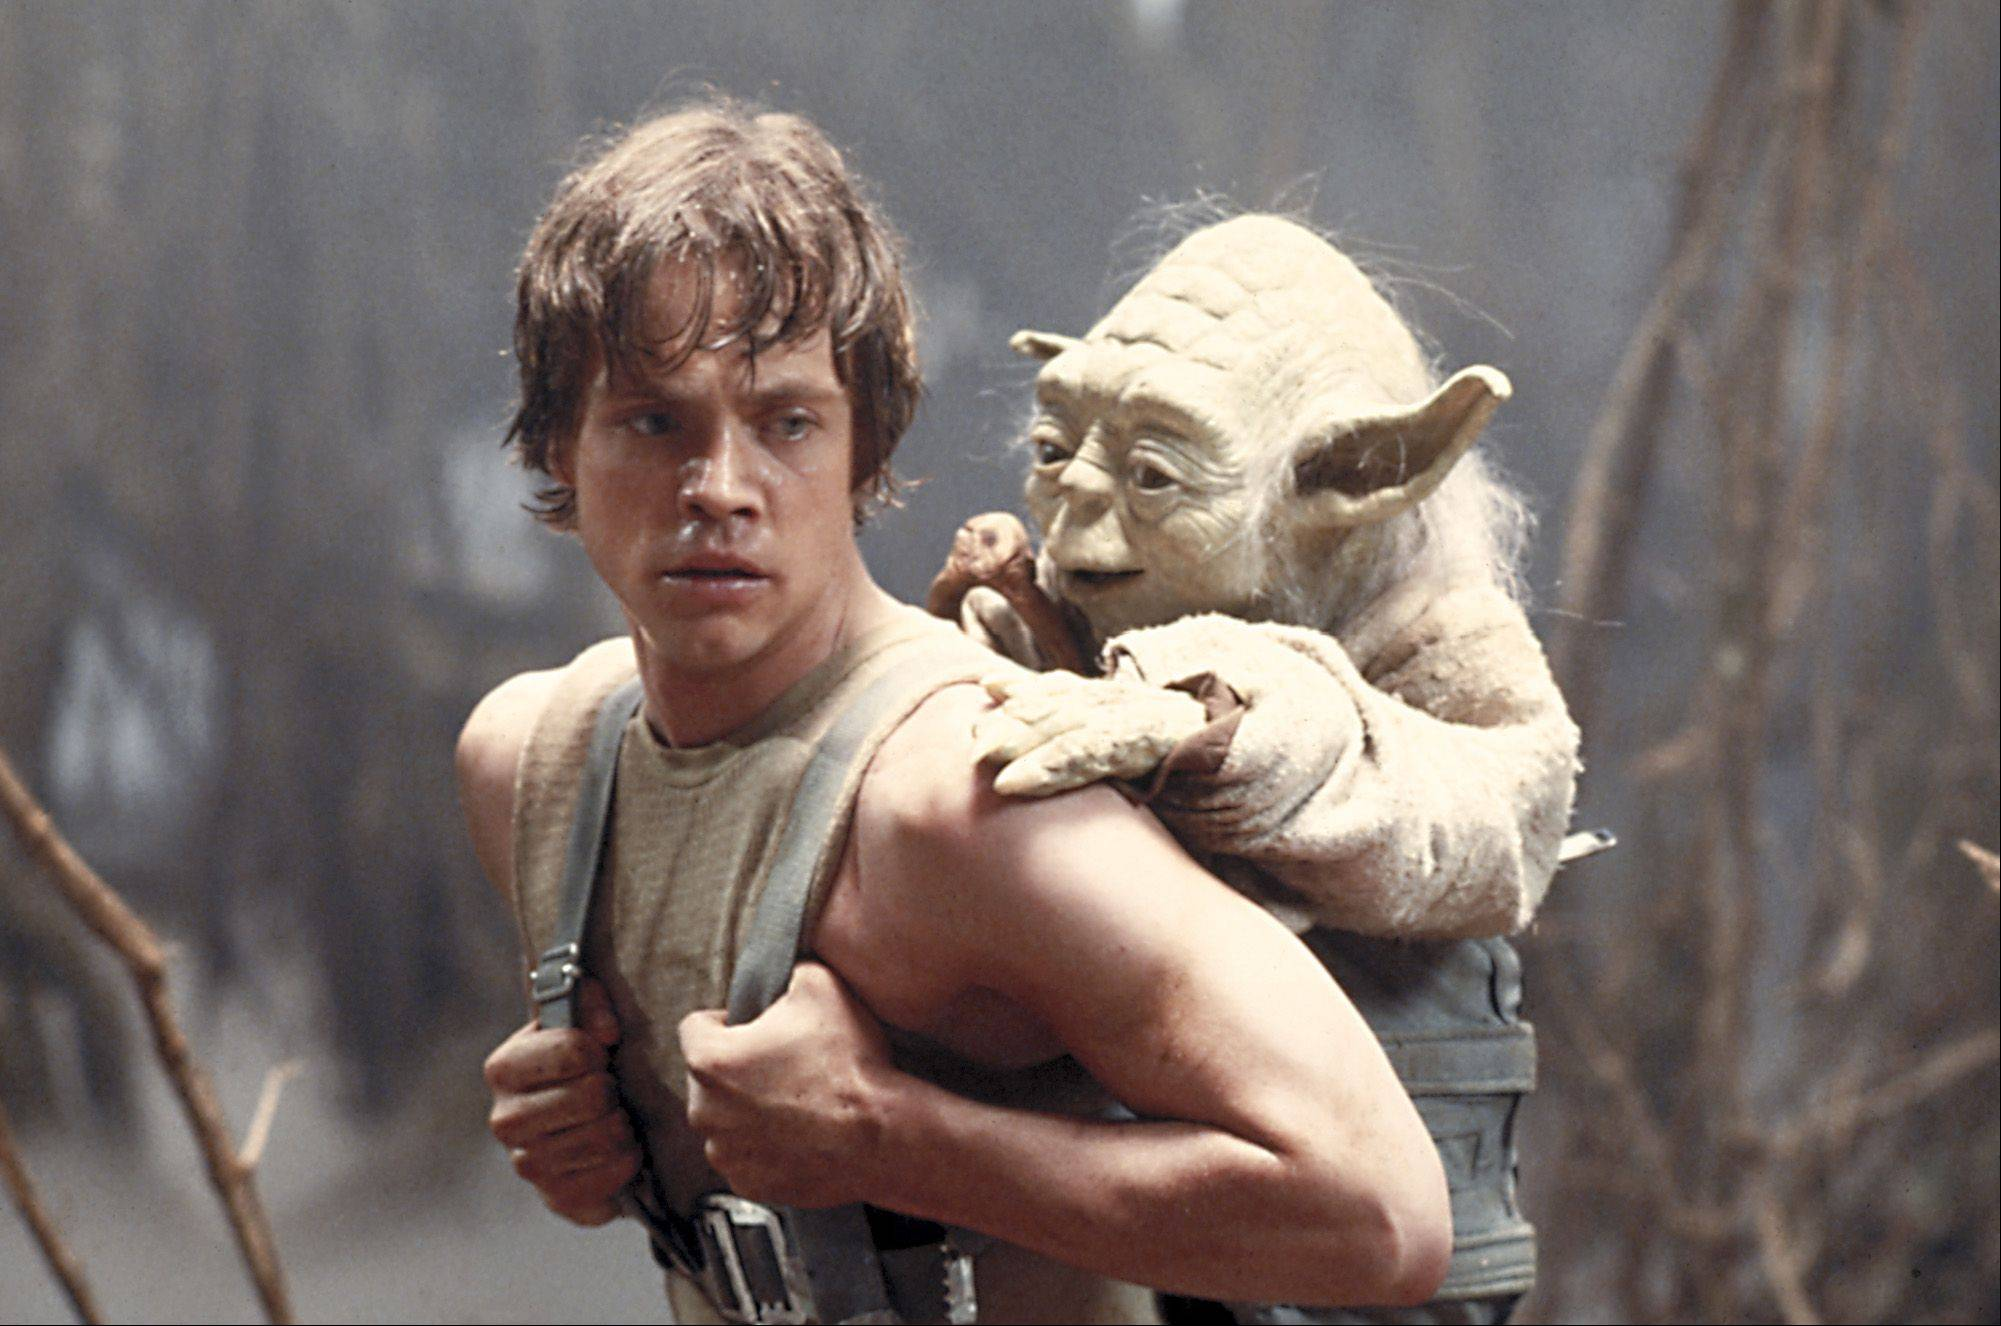 Mark Hamill as Luke Skywalker and Yoda are seen in �Star Wars Episode V: The Empire Strikes Back.� A decade since George Lucas said �Star Wars� was finished on the big screen, a new trilogy under new ownership is destined for theaters after The Walt Disney Co. said Tuesday it was buying Lucasfilm Ltd. for $4.05 billion.